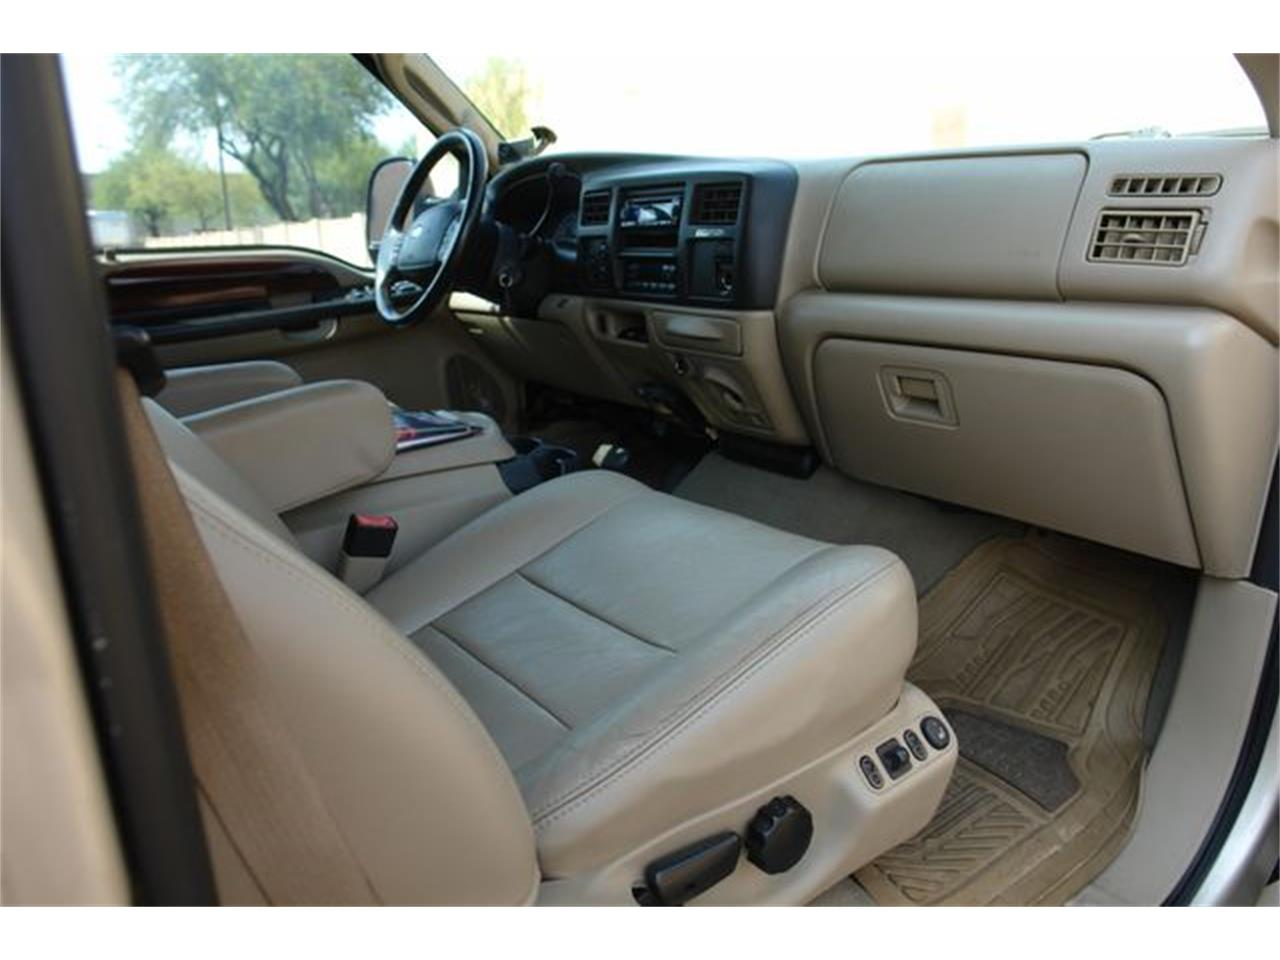 2005 Ford Excursion (CC-1384612) for sale in Phoenix, Arizona